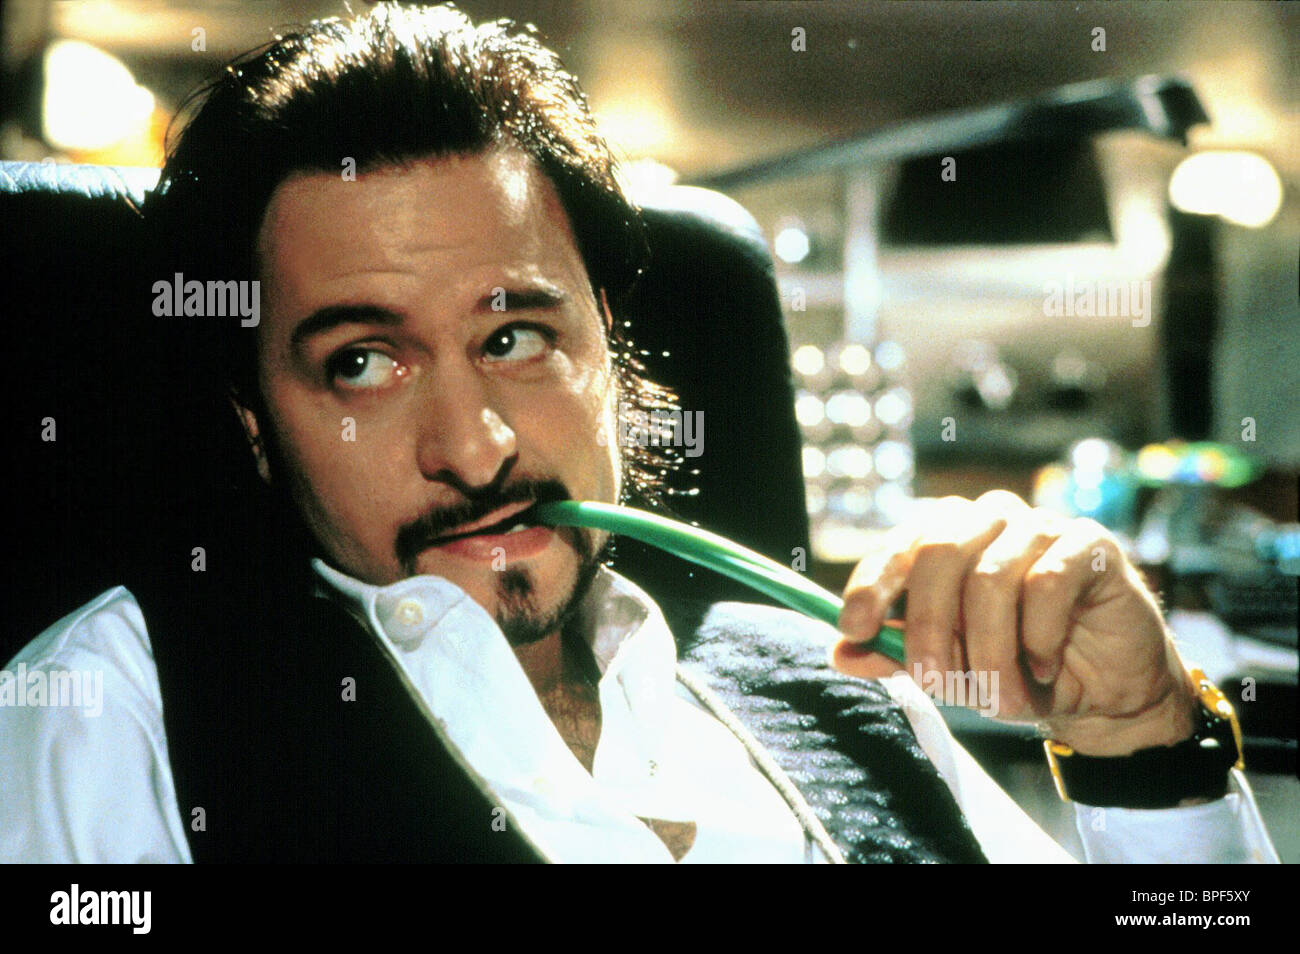 FISHER STEVENS HACKERS (1995 Stock Photo, Royalty Free ...